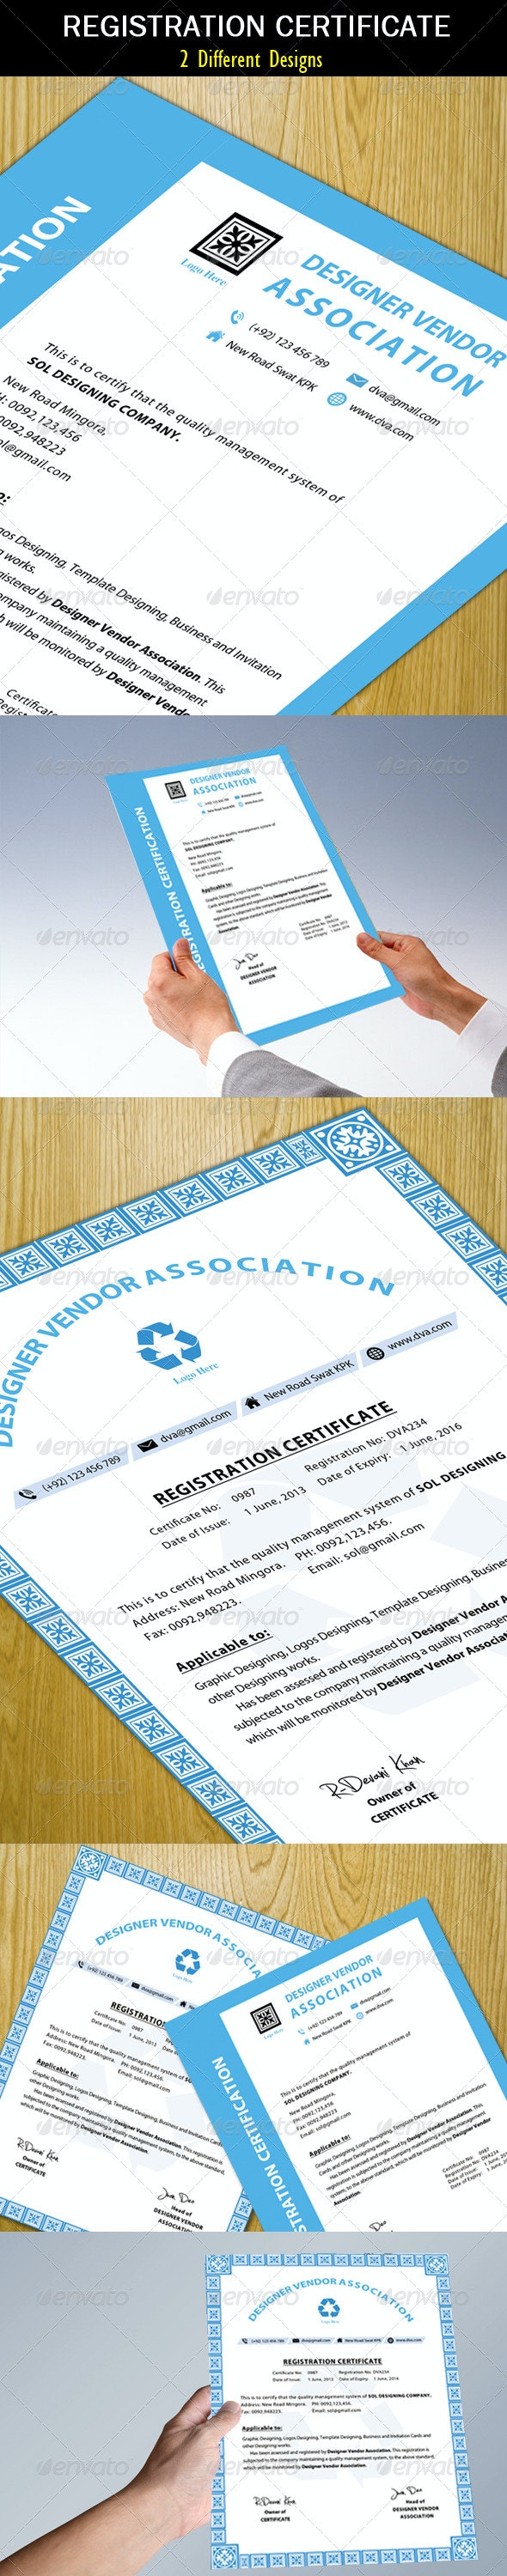 Registration Certificate (Clean) - Print Templates